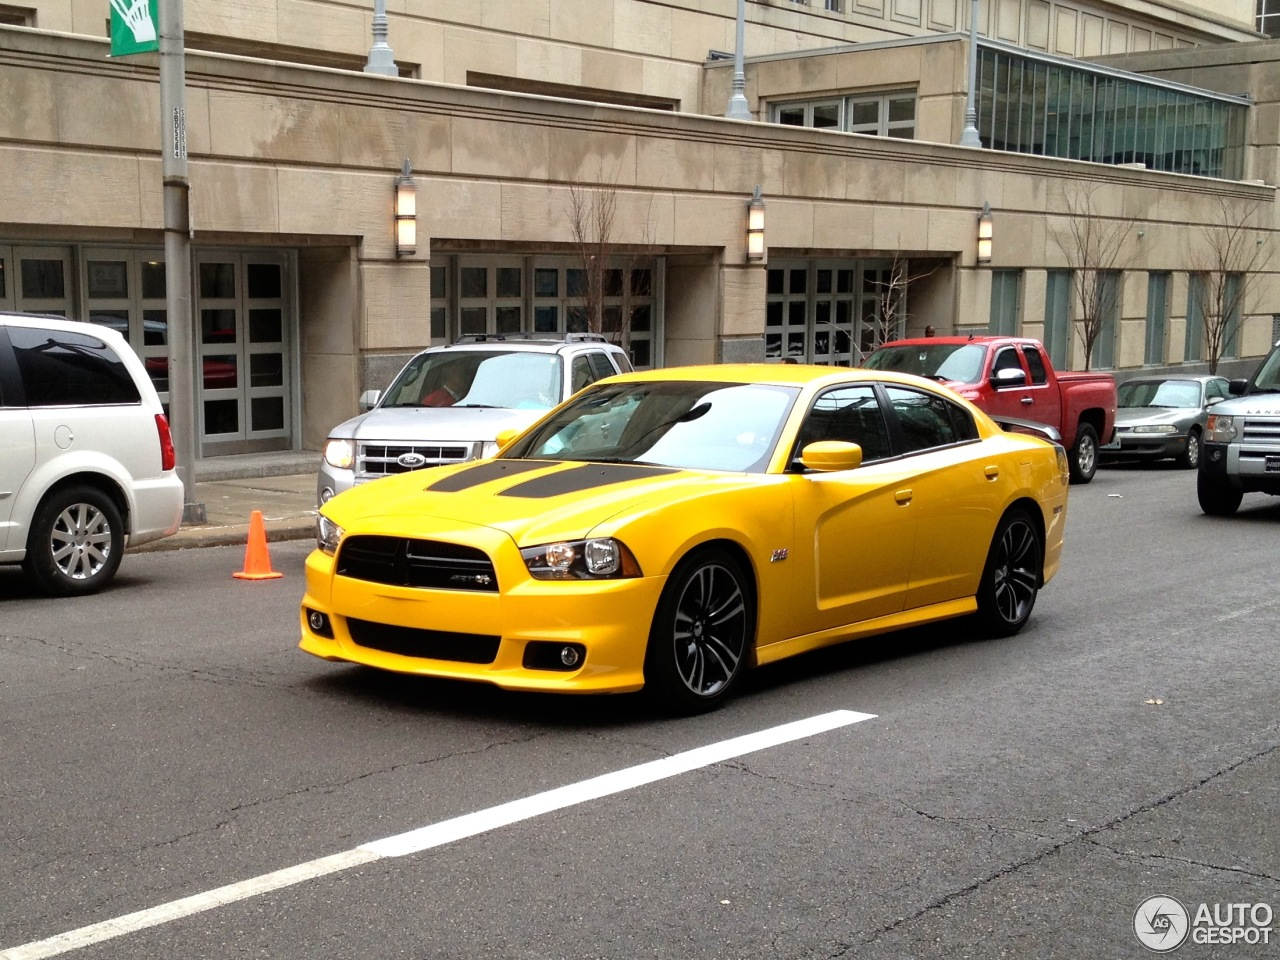 Dodge Charger Srt 8 Super Bee 2012 9 March 2013 Autogespot